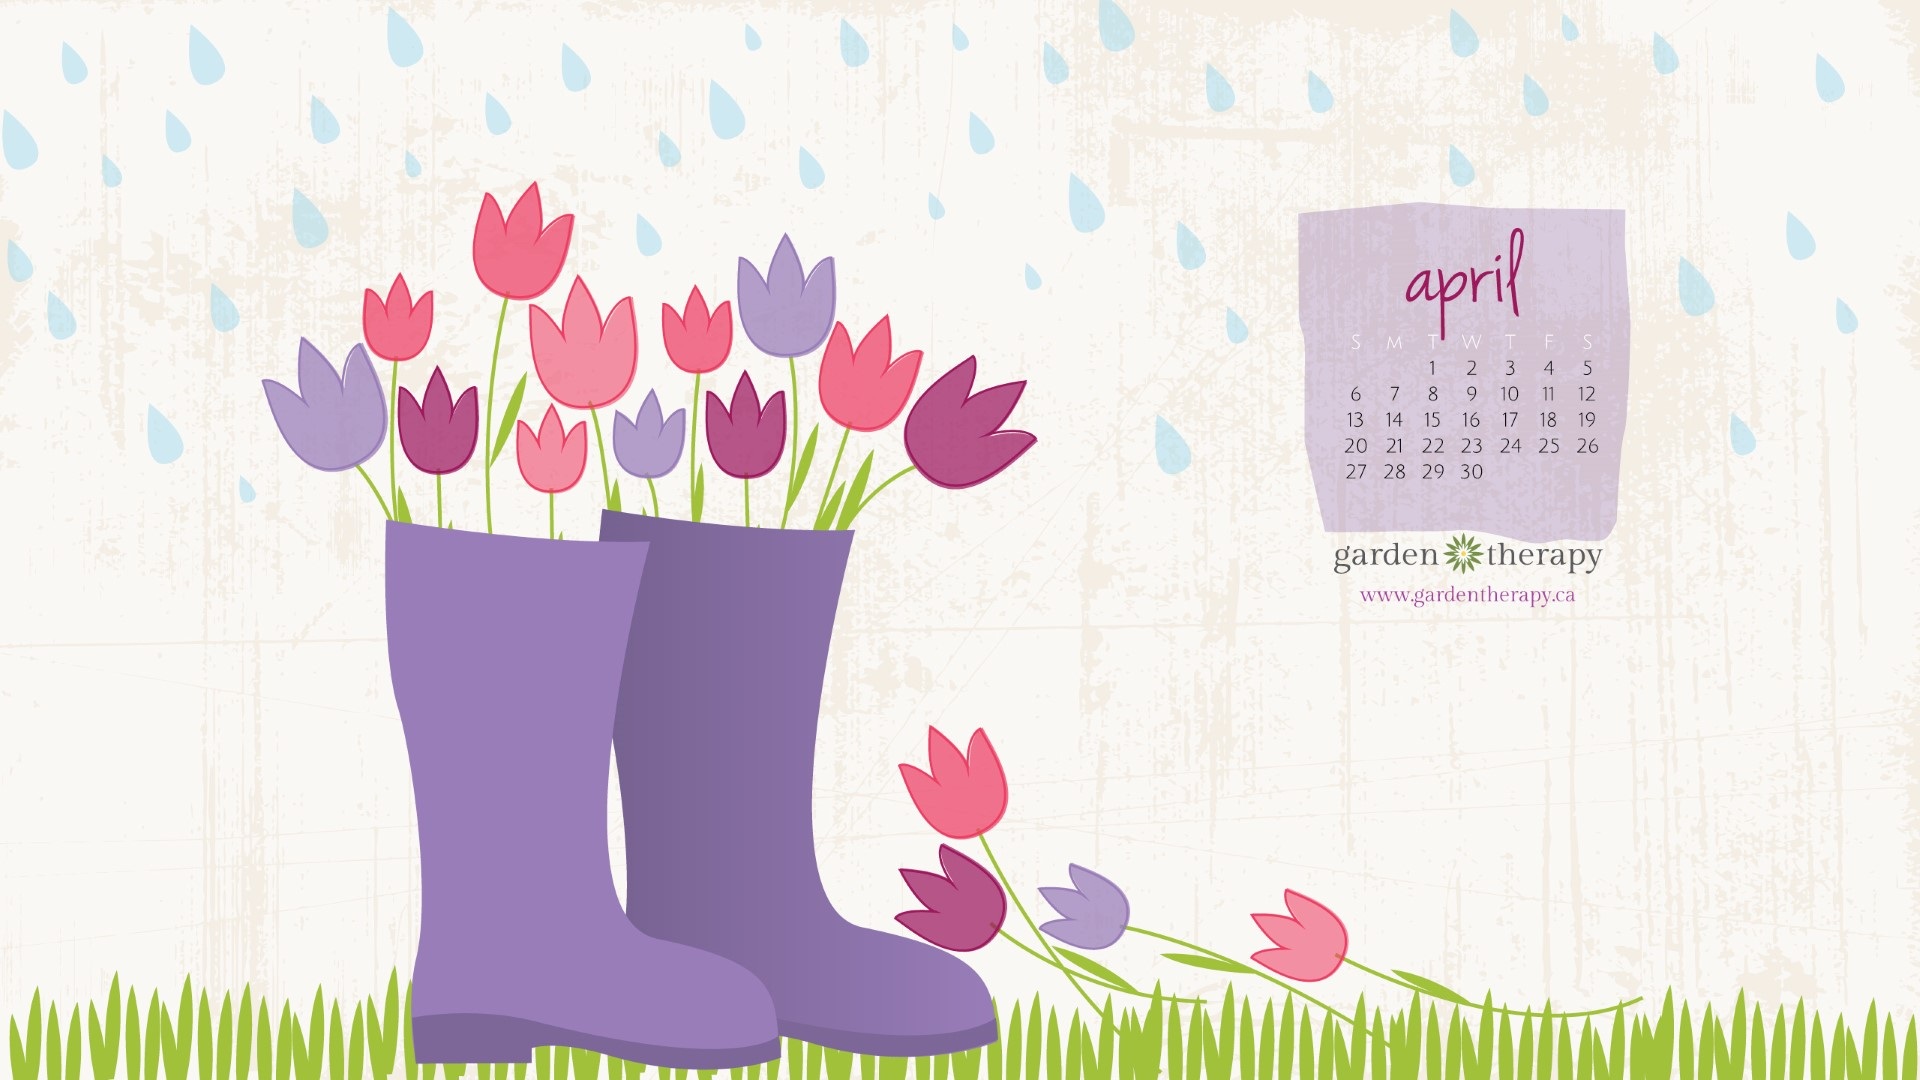 April Rose Calendar : Garden therapy downloadable desktop calendar april showers